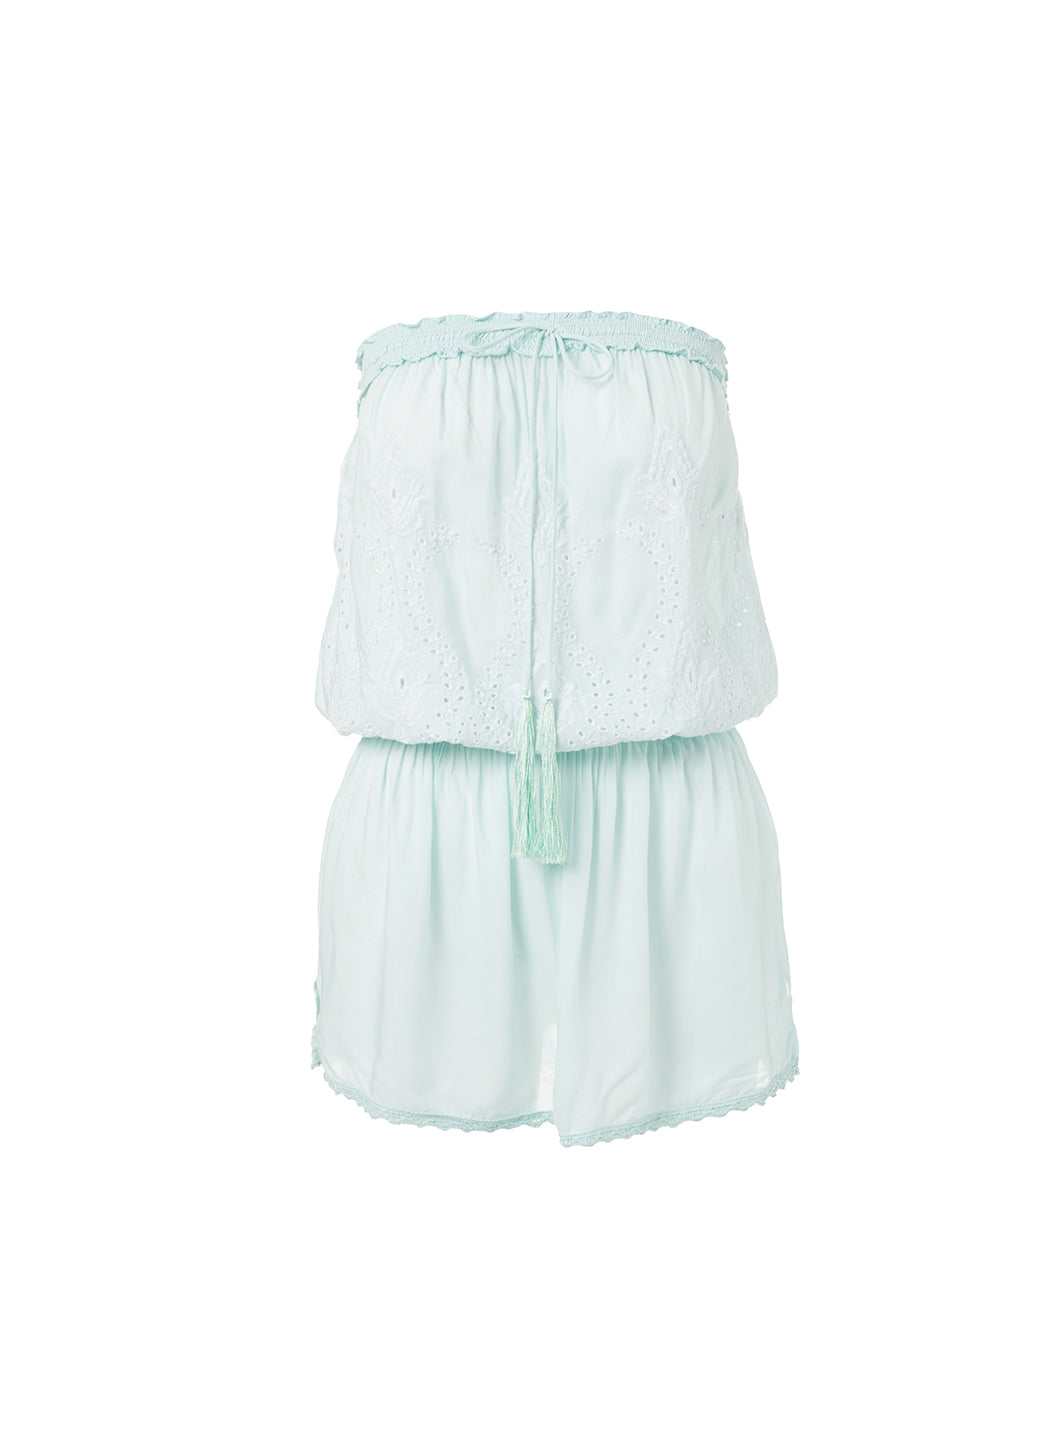 Fruley Mint Bandeau Embroidered Short Beach Dress - Melissa Odabash Dresses & Kaftans